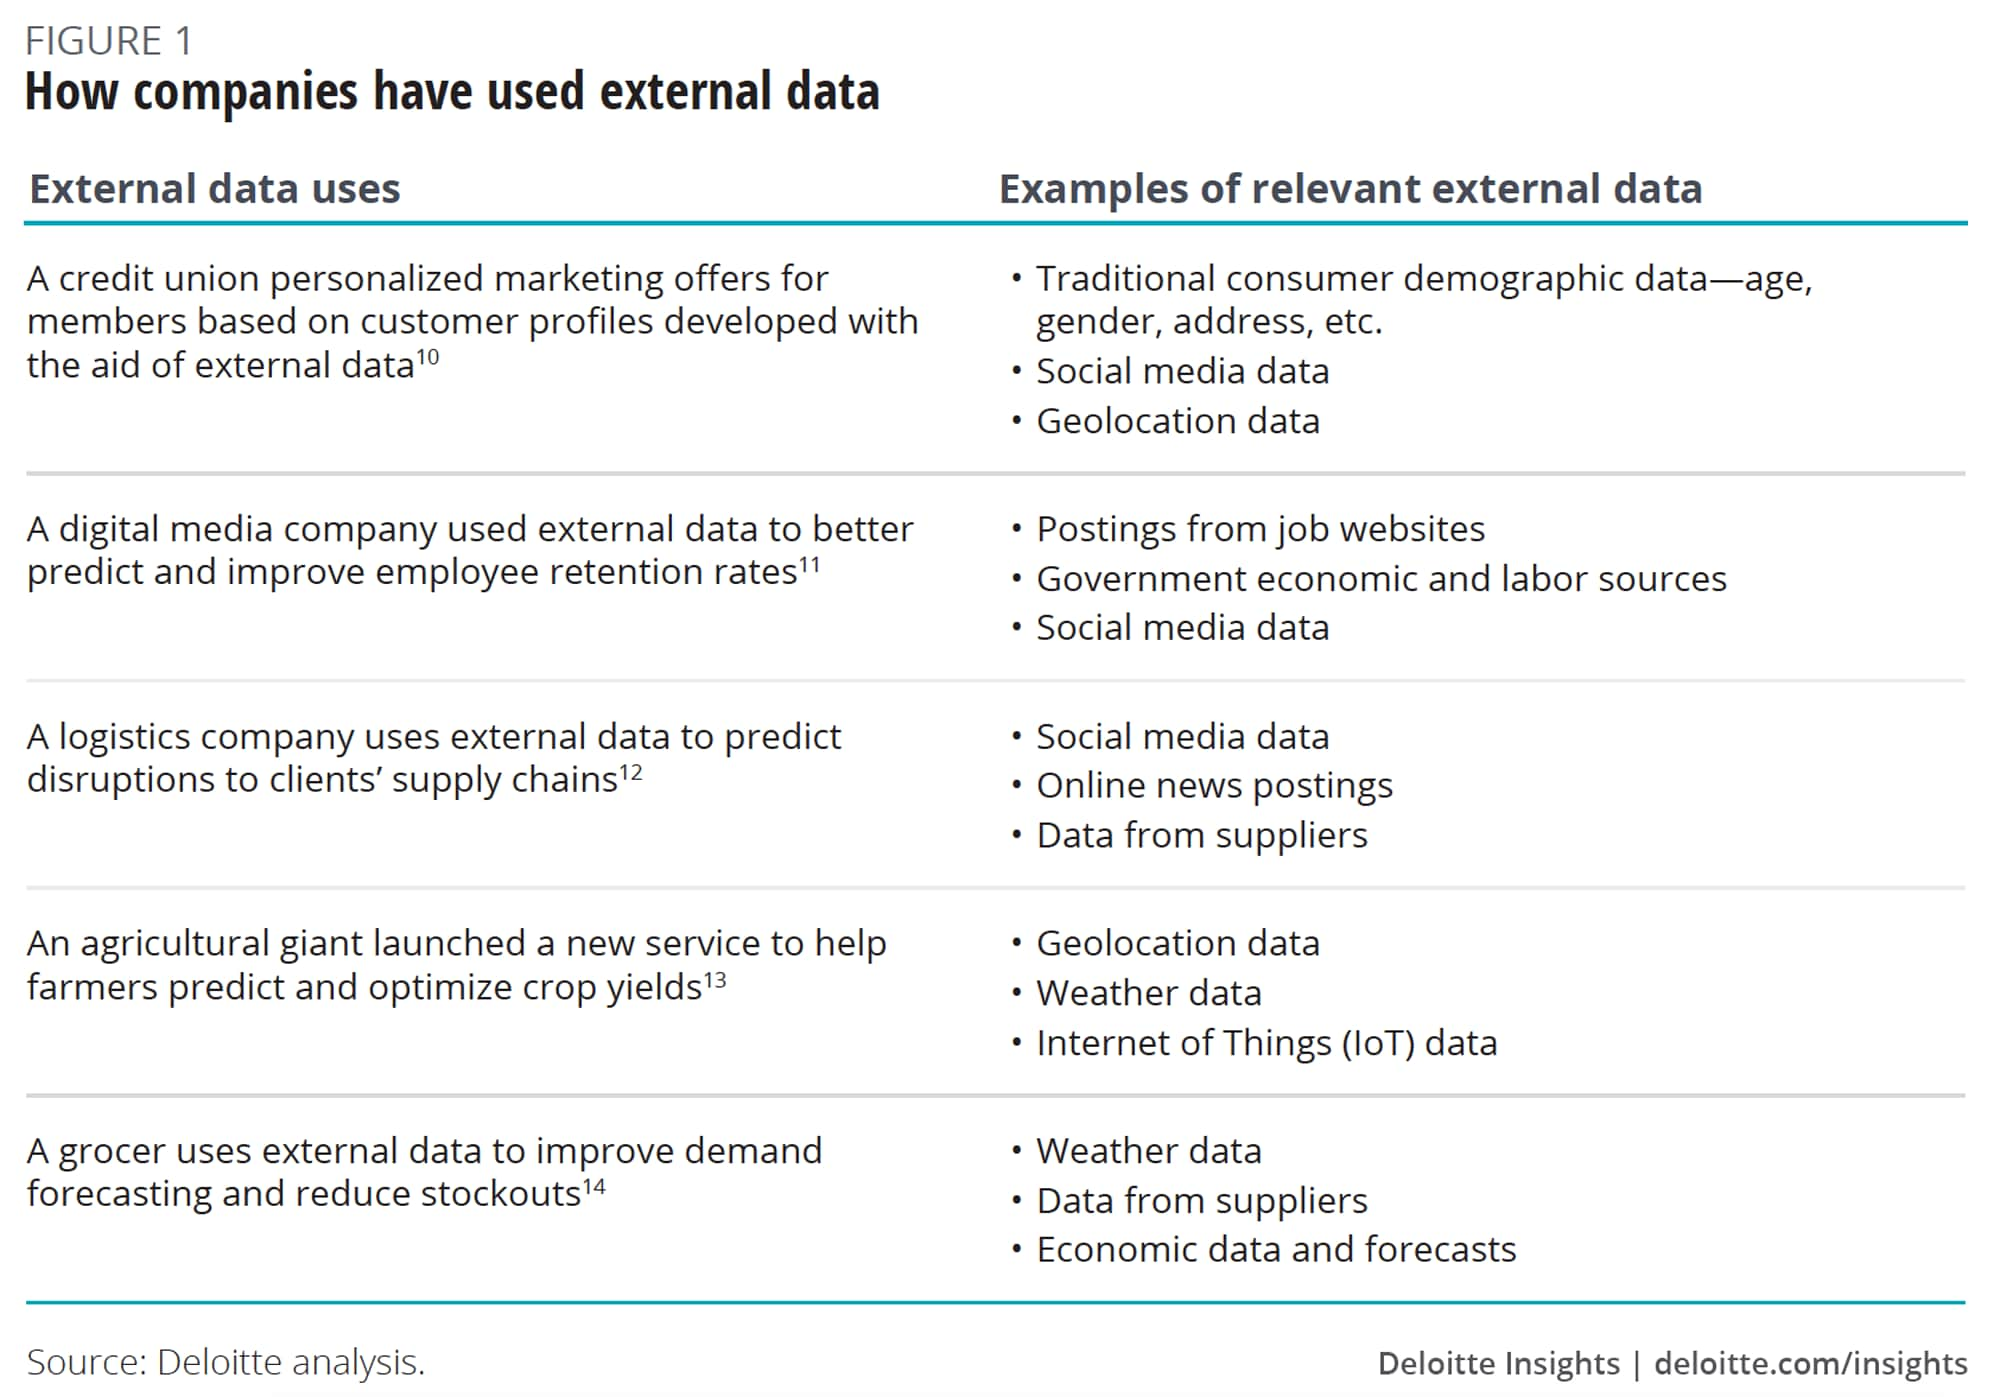 How companies have used external data